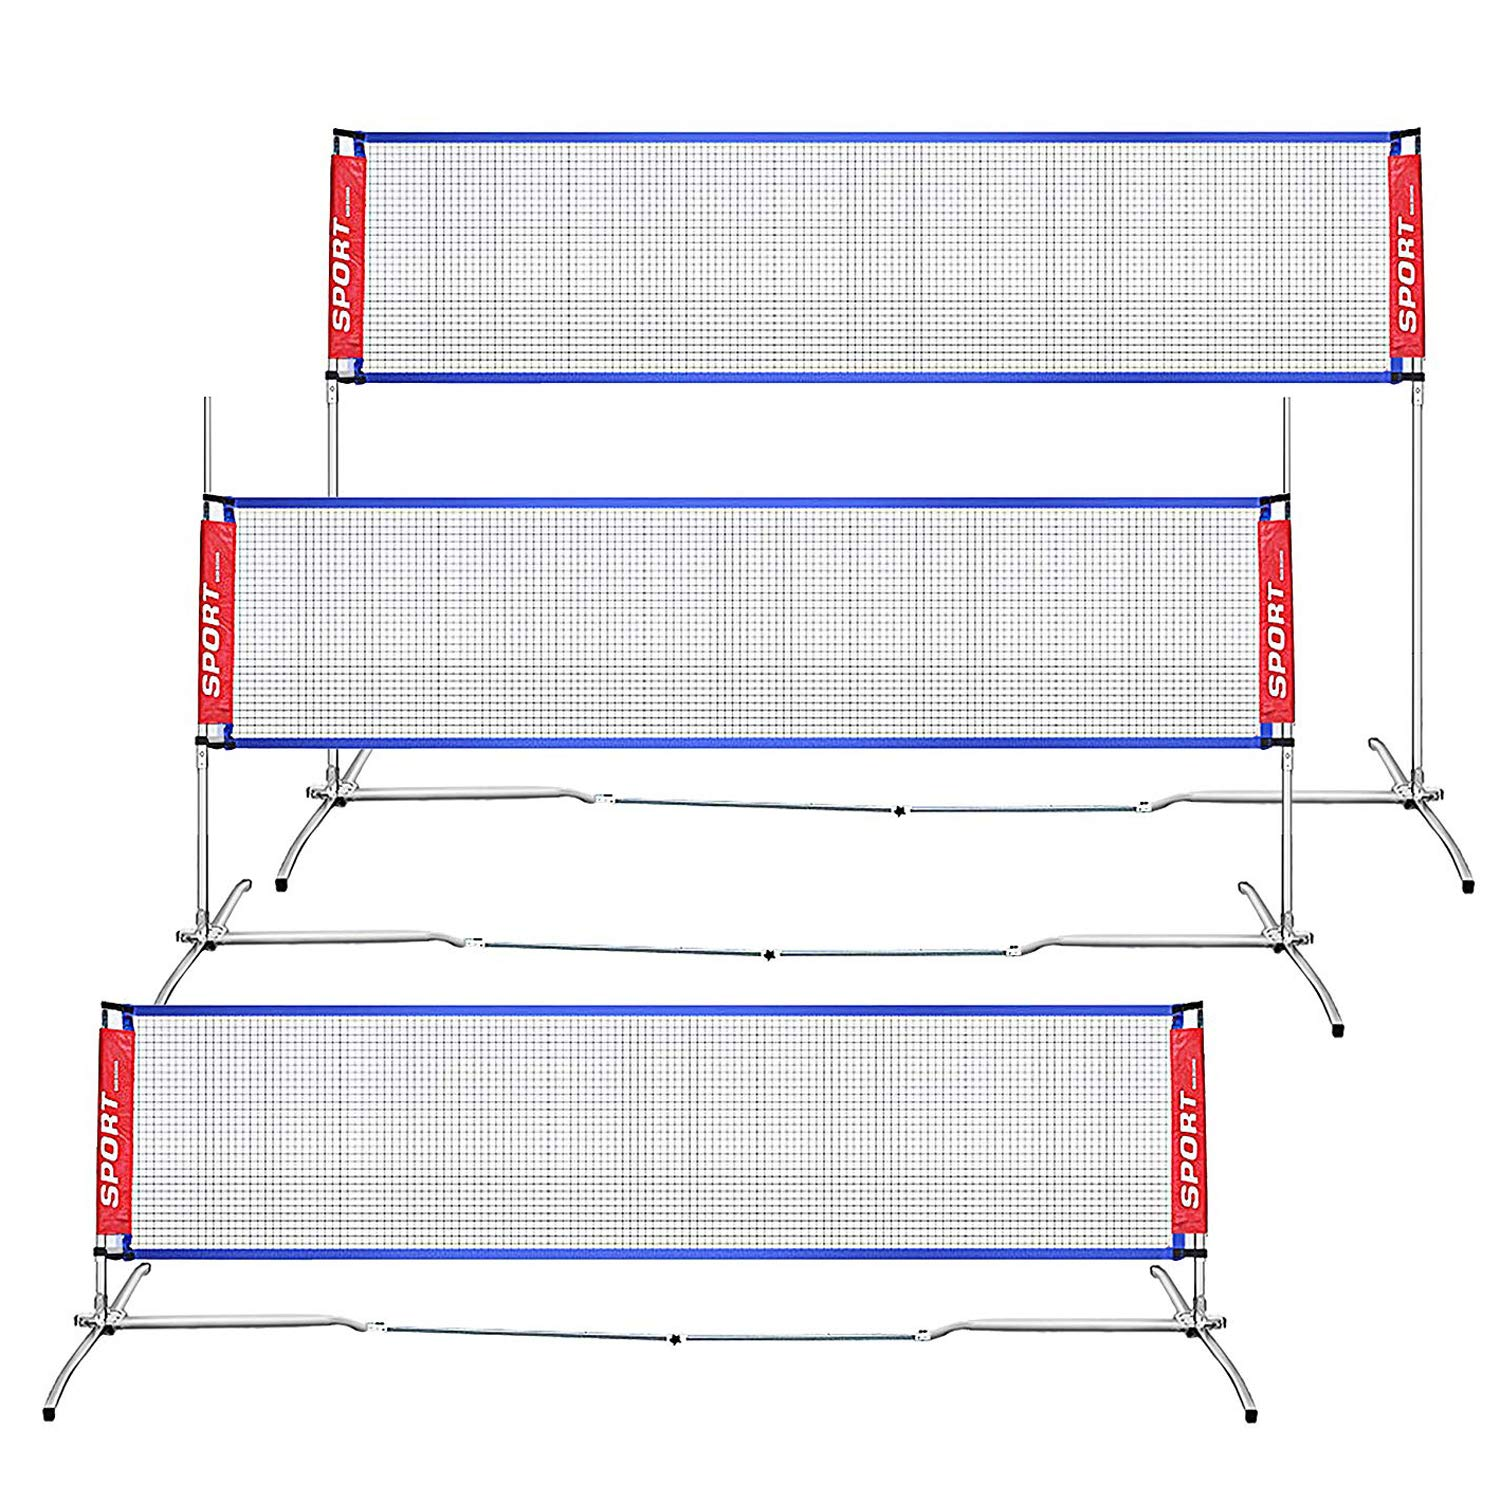 AKOZLIN Stainless Steel Portable Badminton Net Set - Net for Tennis, Soccer Tennis, Pickleball, Kids Volleyball for Indoor or Outdoor Court, Beach, Driveway